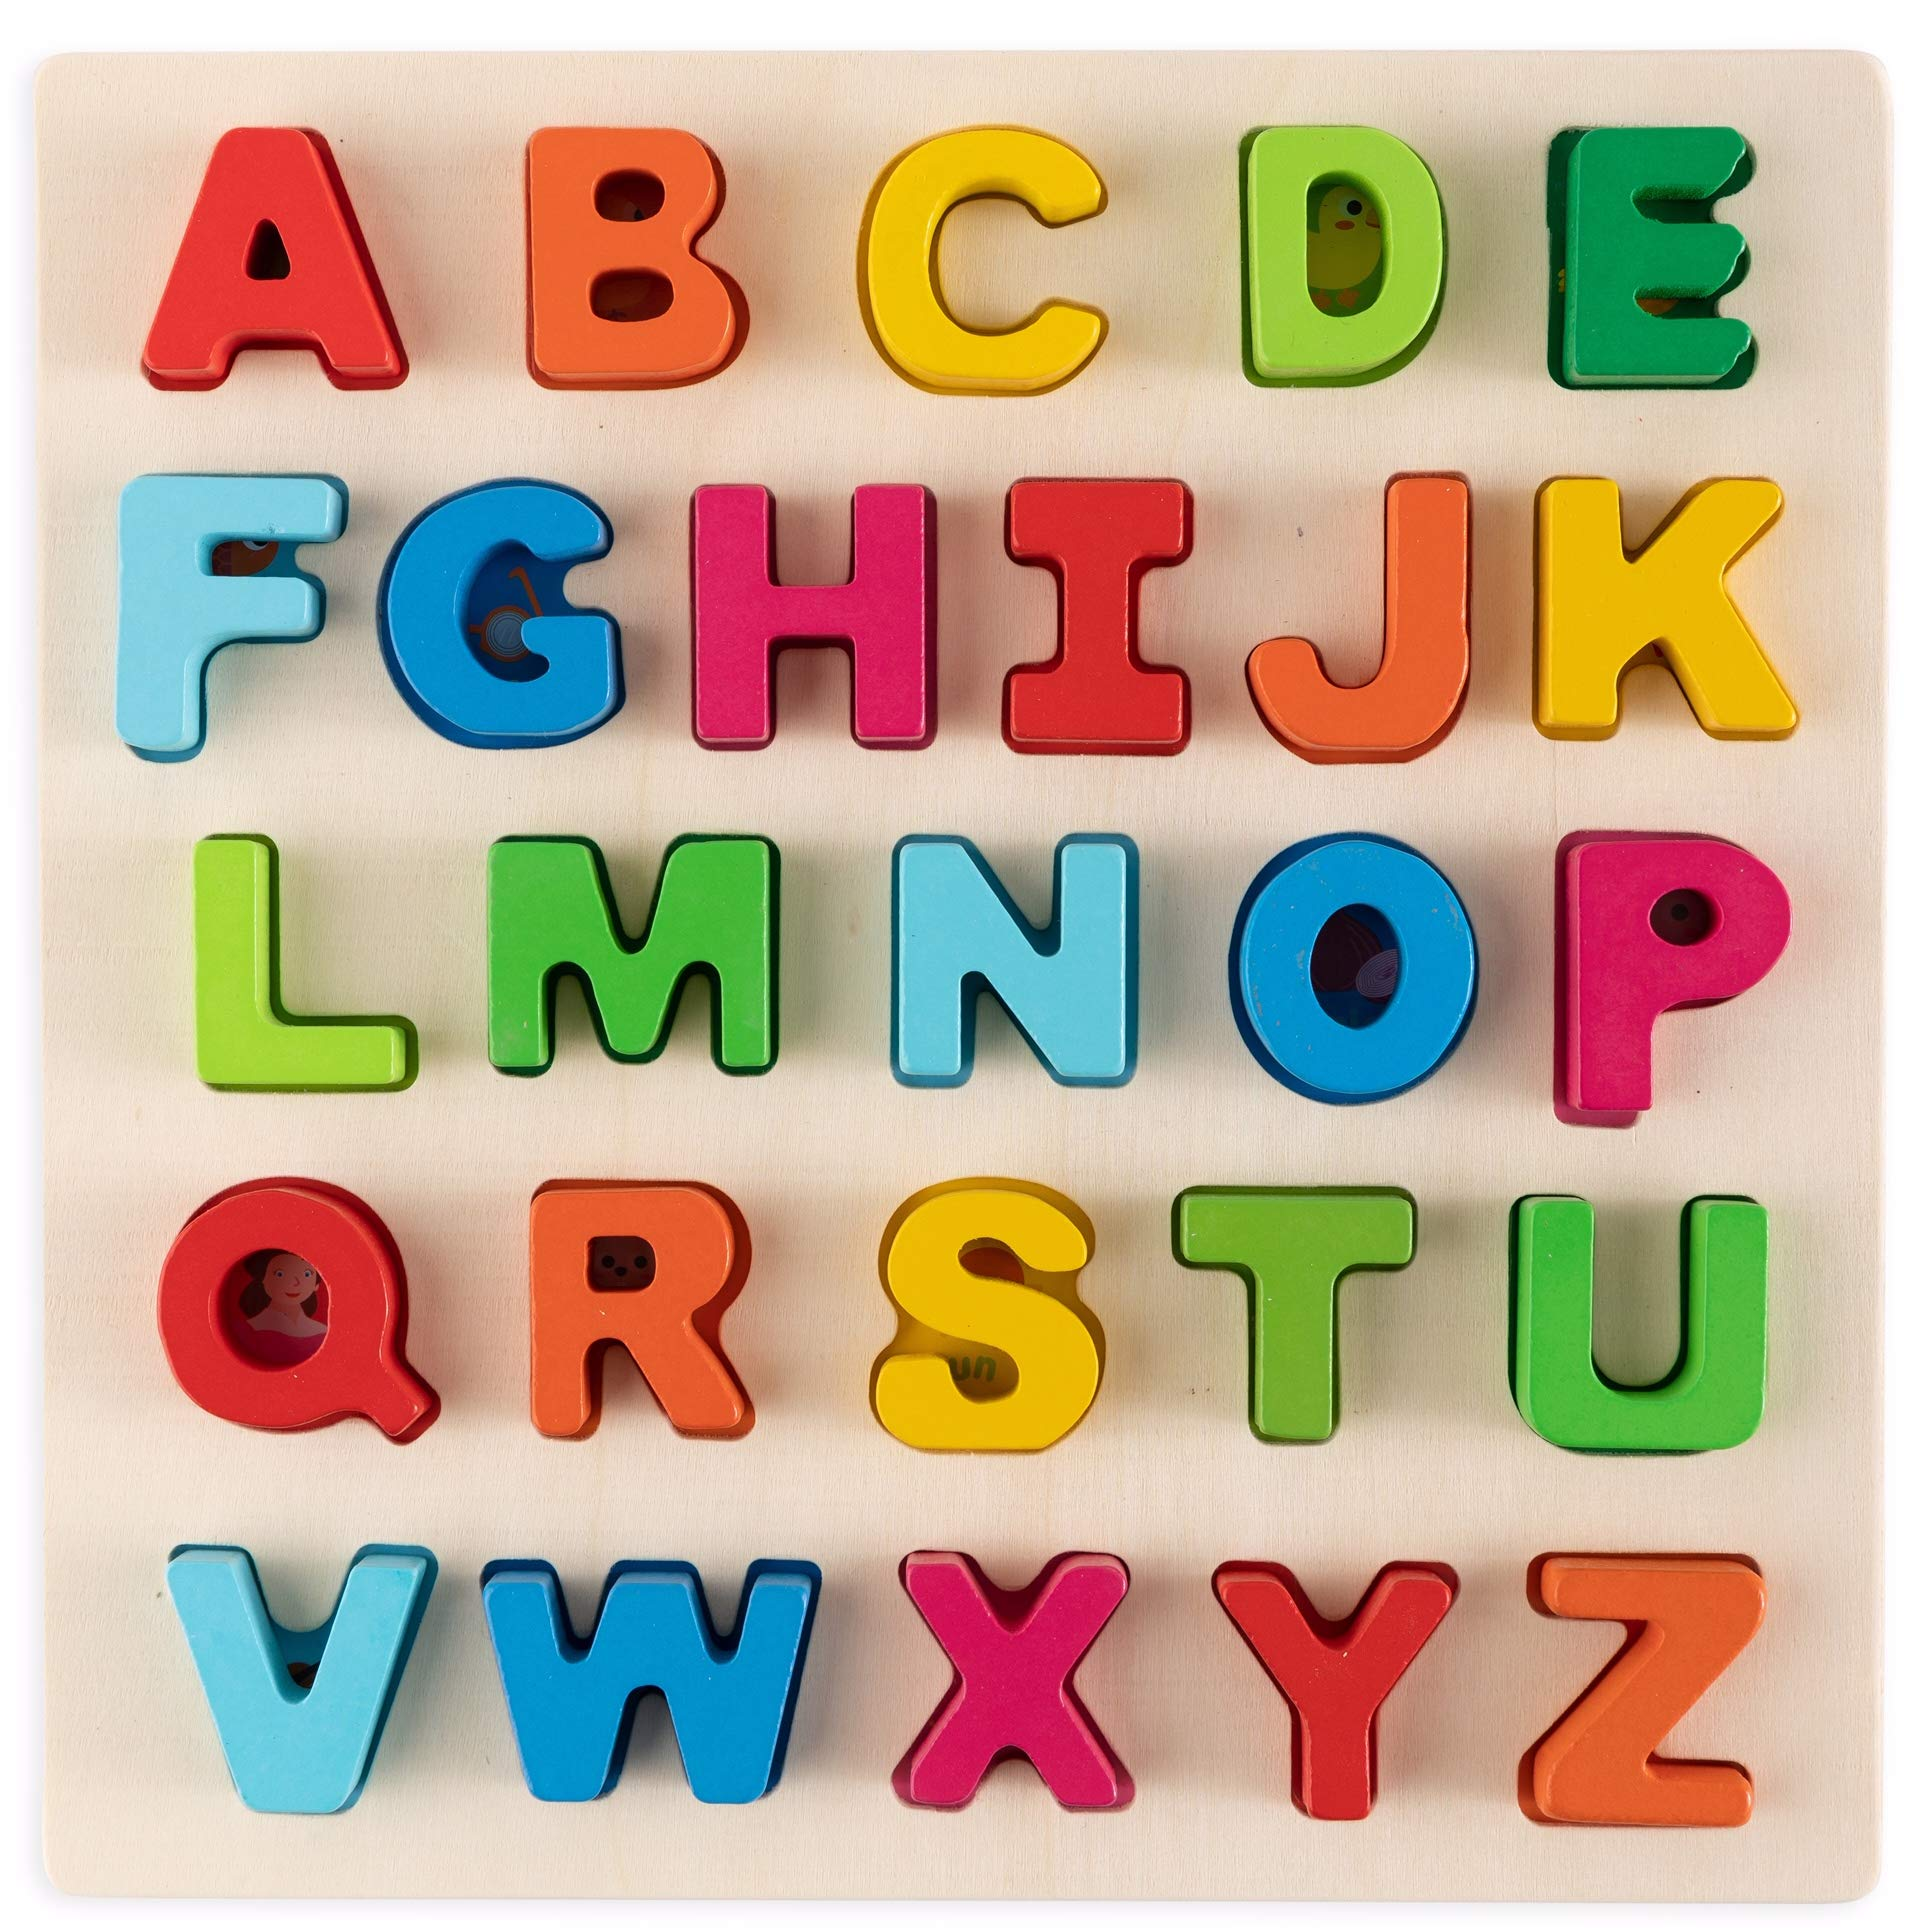 Toy To Enjoy Alphabet Puzzles - Wooden Upper Case Learning Board Toy - Ideal for Early Educational Learning for Kindergarten Toddlers & Preschools